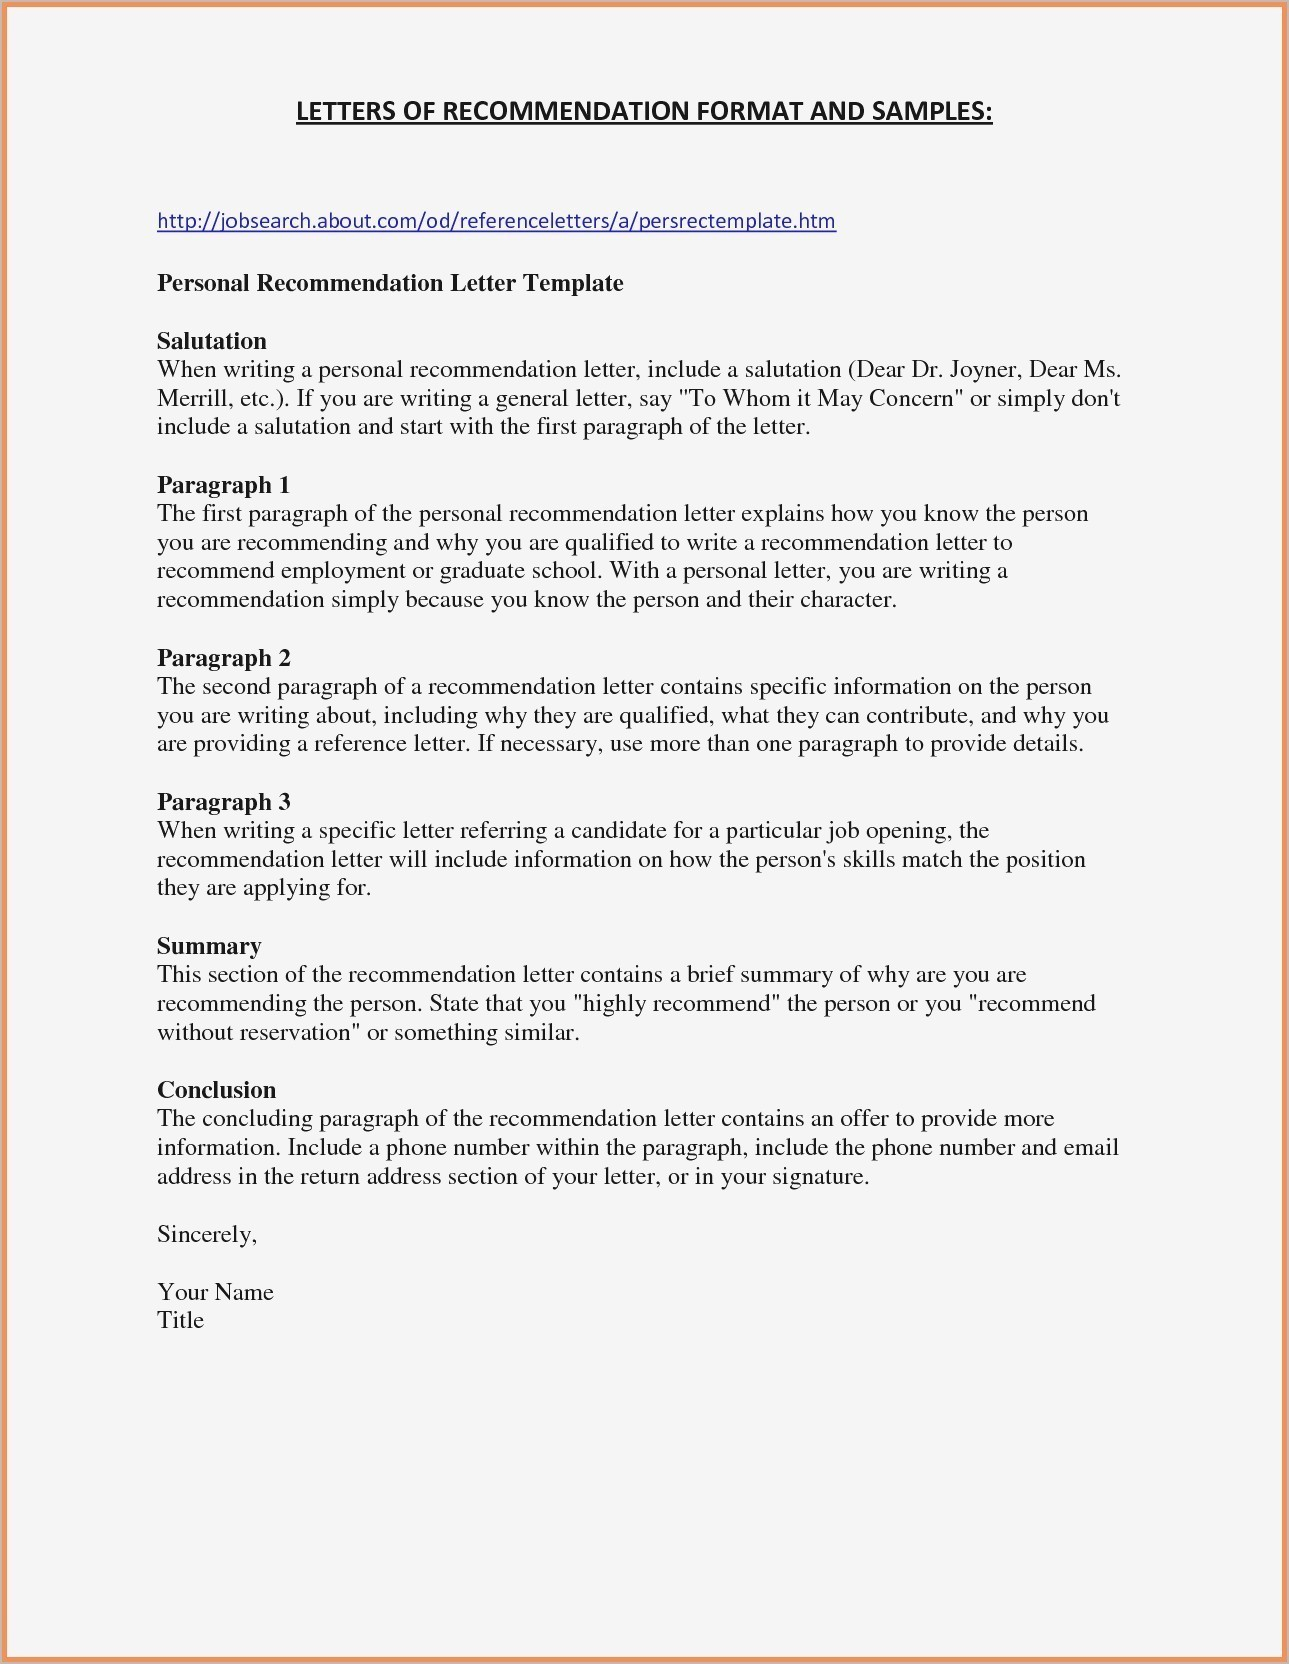 personal recommendation letter template job re mendation letter samples valid sample job re mendation